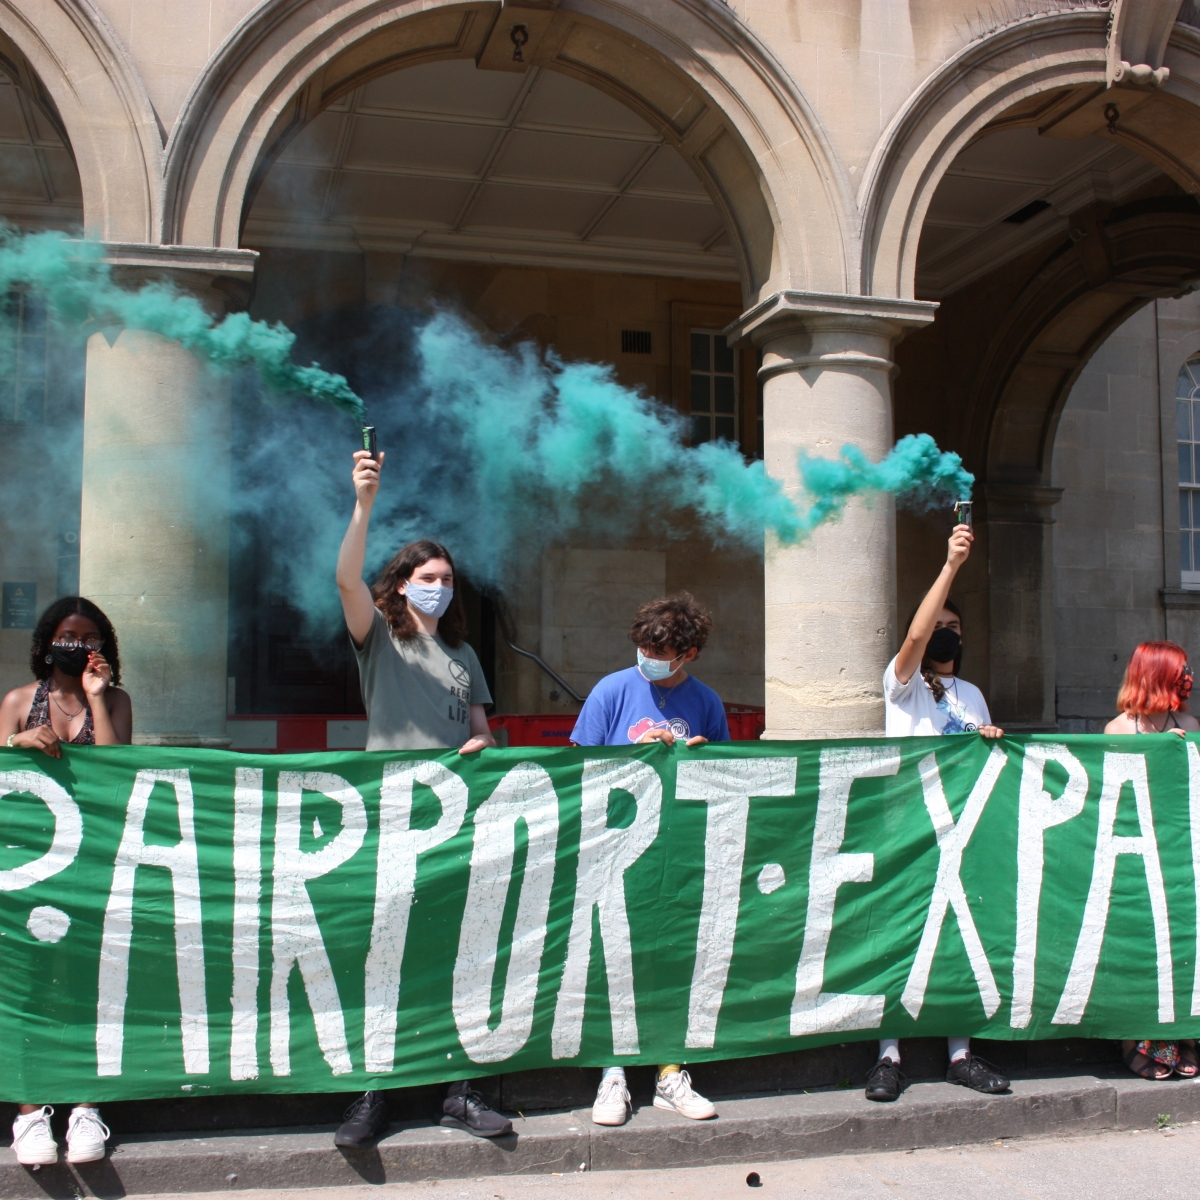 """Seven youth activists hold a banner saying """"Skolstrejt For Klimatet"""" outside Weston-Super-Mare town hall. Two hold smoke bombs releasing blue smoke."""